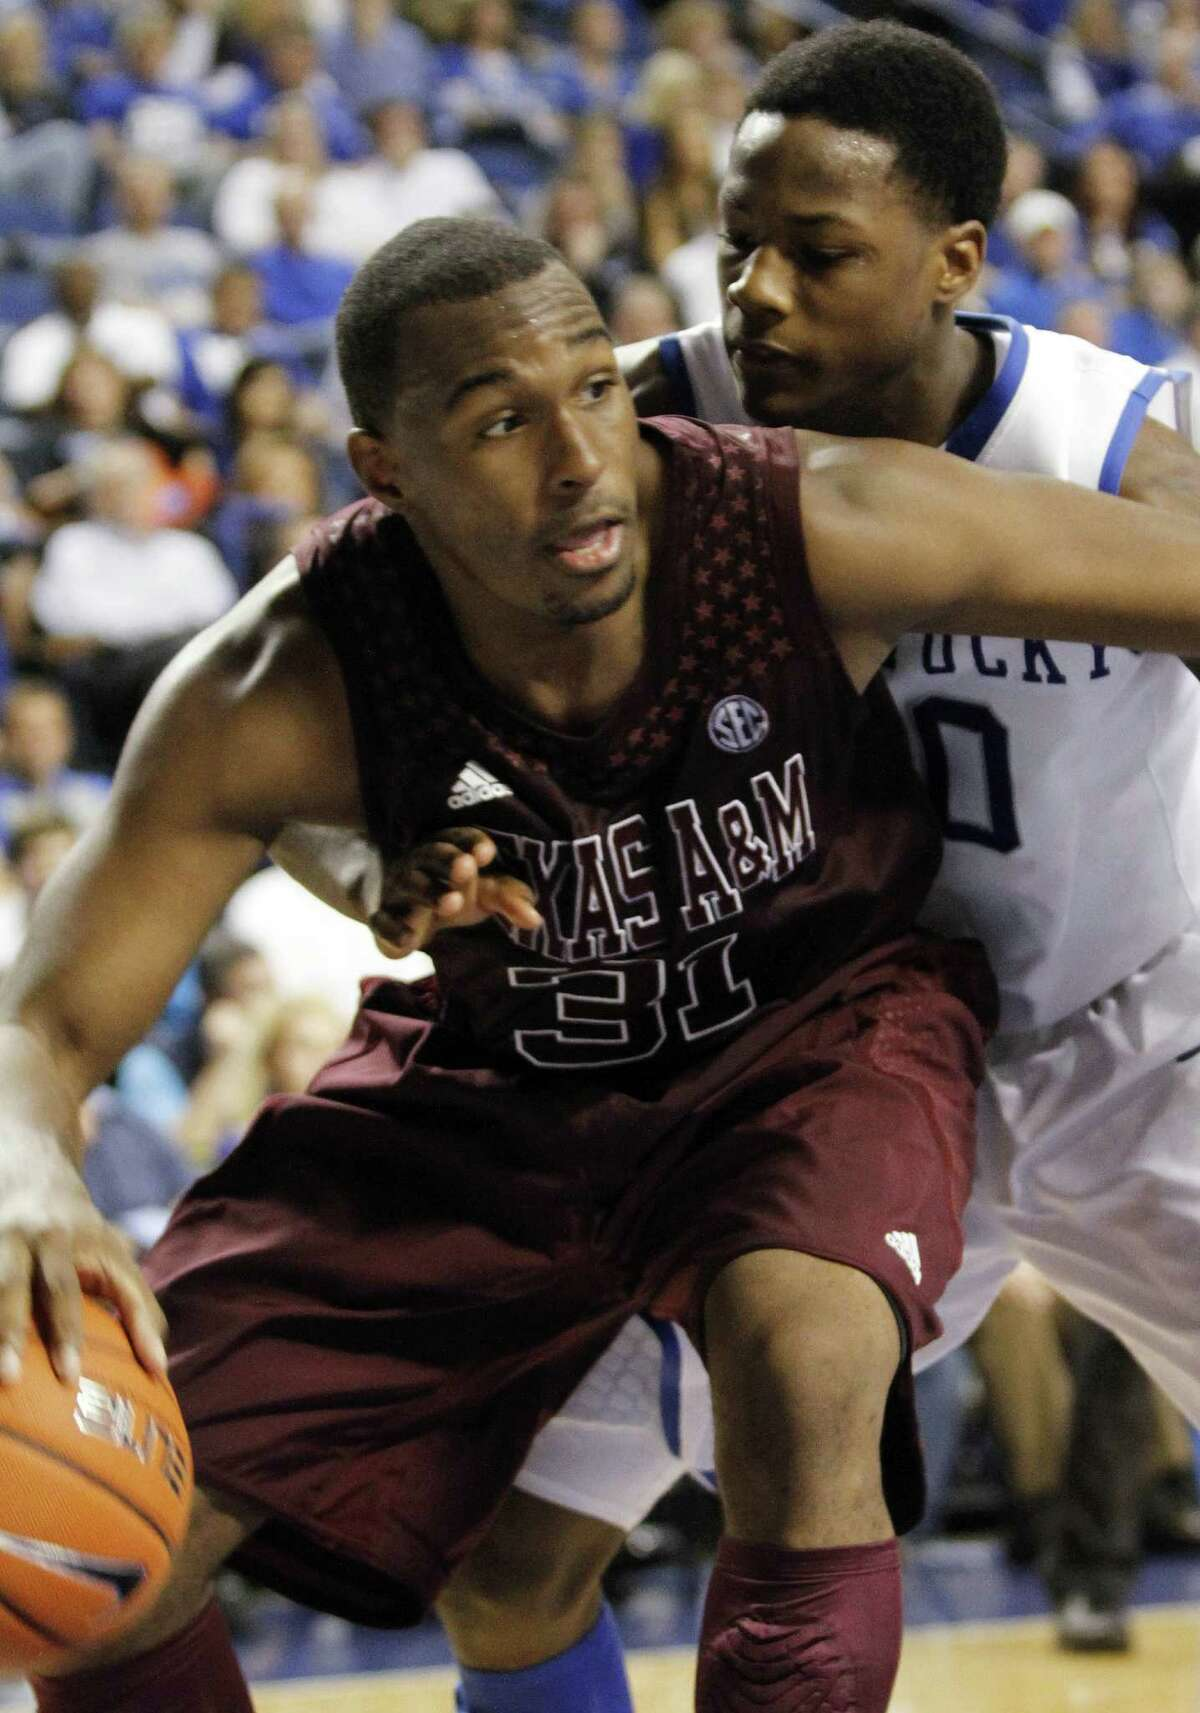 Texas A&M's Elston Turner, left, is pressured by Kentucky's Archie Goodwin during the second half of an NCAA college basketball game at Rupp Arena in Lexington, Ky., Saturday, Jan. 12, 2013. Texas A&M defeated Kentucky 83-71. (AP Photo/James Crisp)